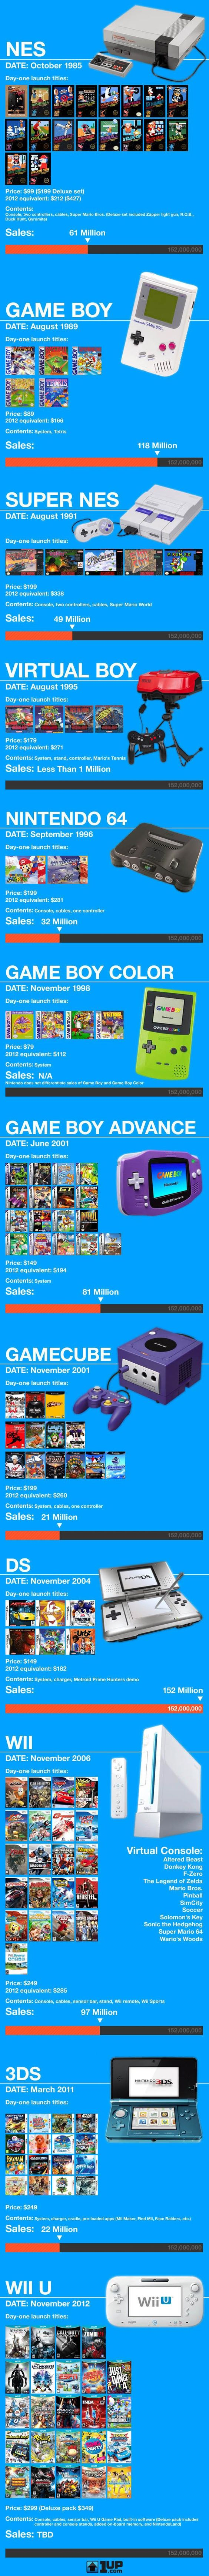 Nintendo through the years // I should print this out for The Horde for Christmas. E's obsessed with nintendo. I think E's gonna turn into Black Nerd--Andre Meadow/BlackNerdComedy on youtube--when E grows up. I hope E ops for Mutt Nerd or Queer Nerd :D -pixypi